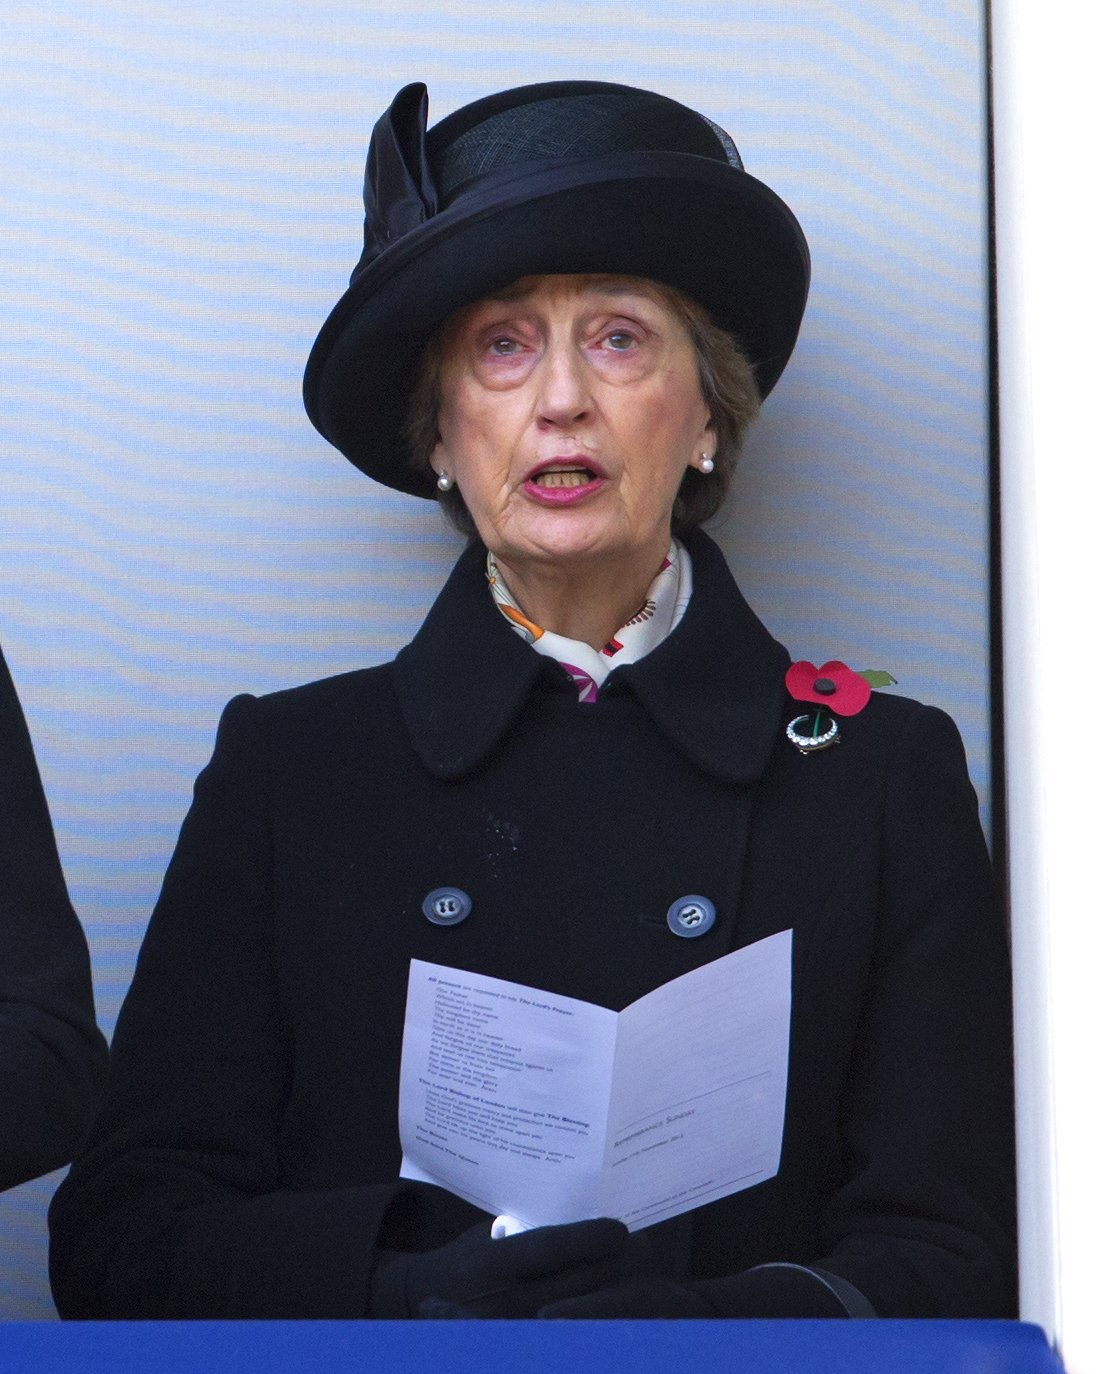 Lady Susan Hussey attends the annual Remembrance Sunday Service at the Cenotaph, Whitehall on November 11, 2012 in London, England | Photo: Getty Images